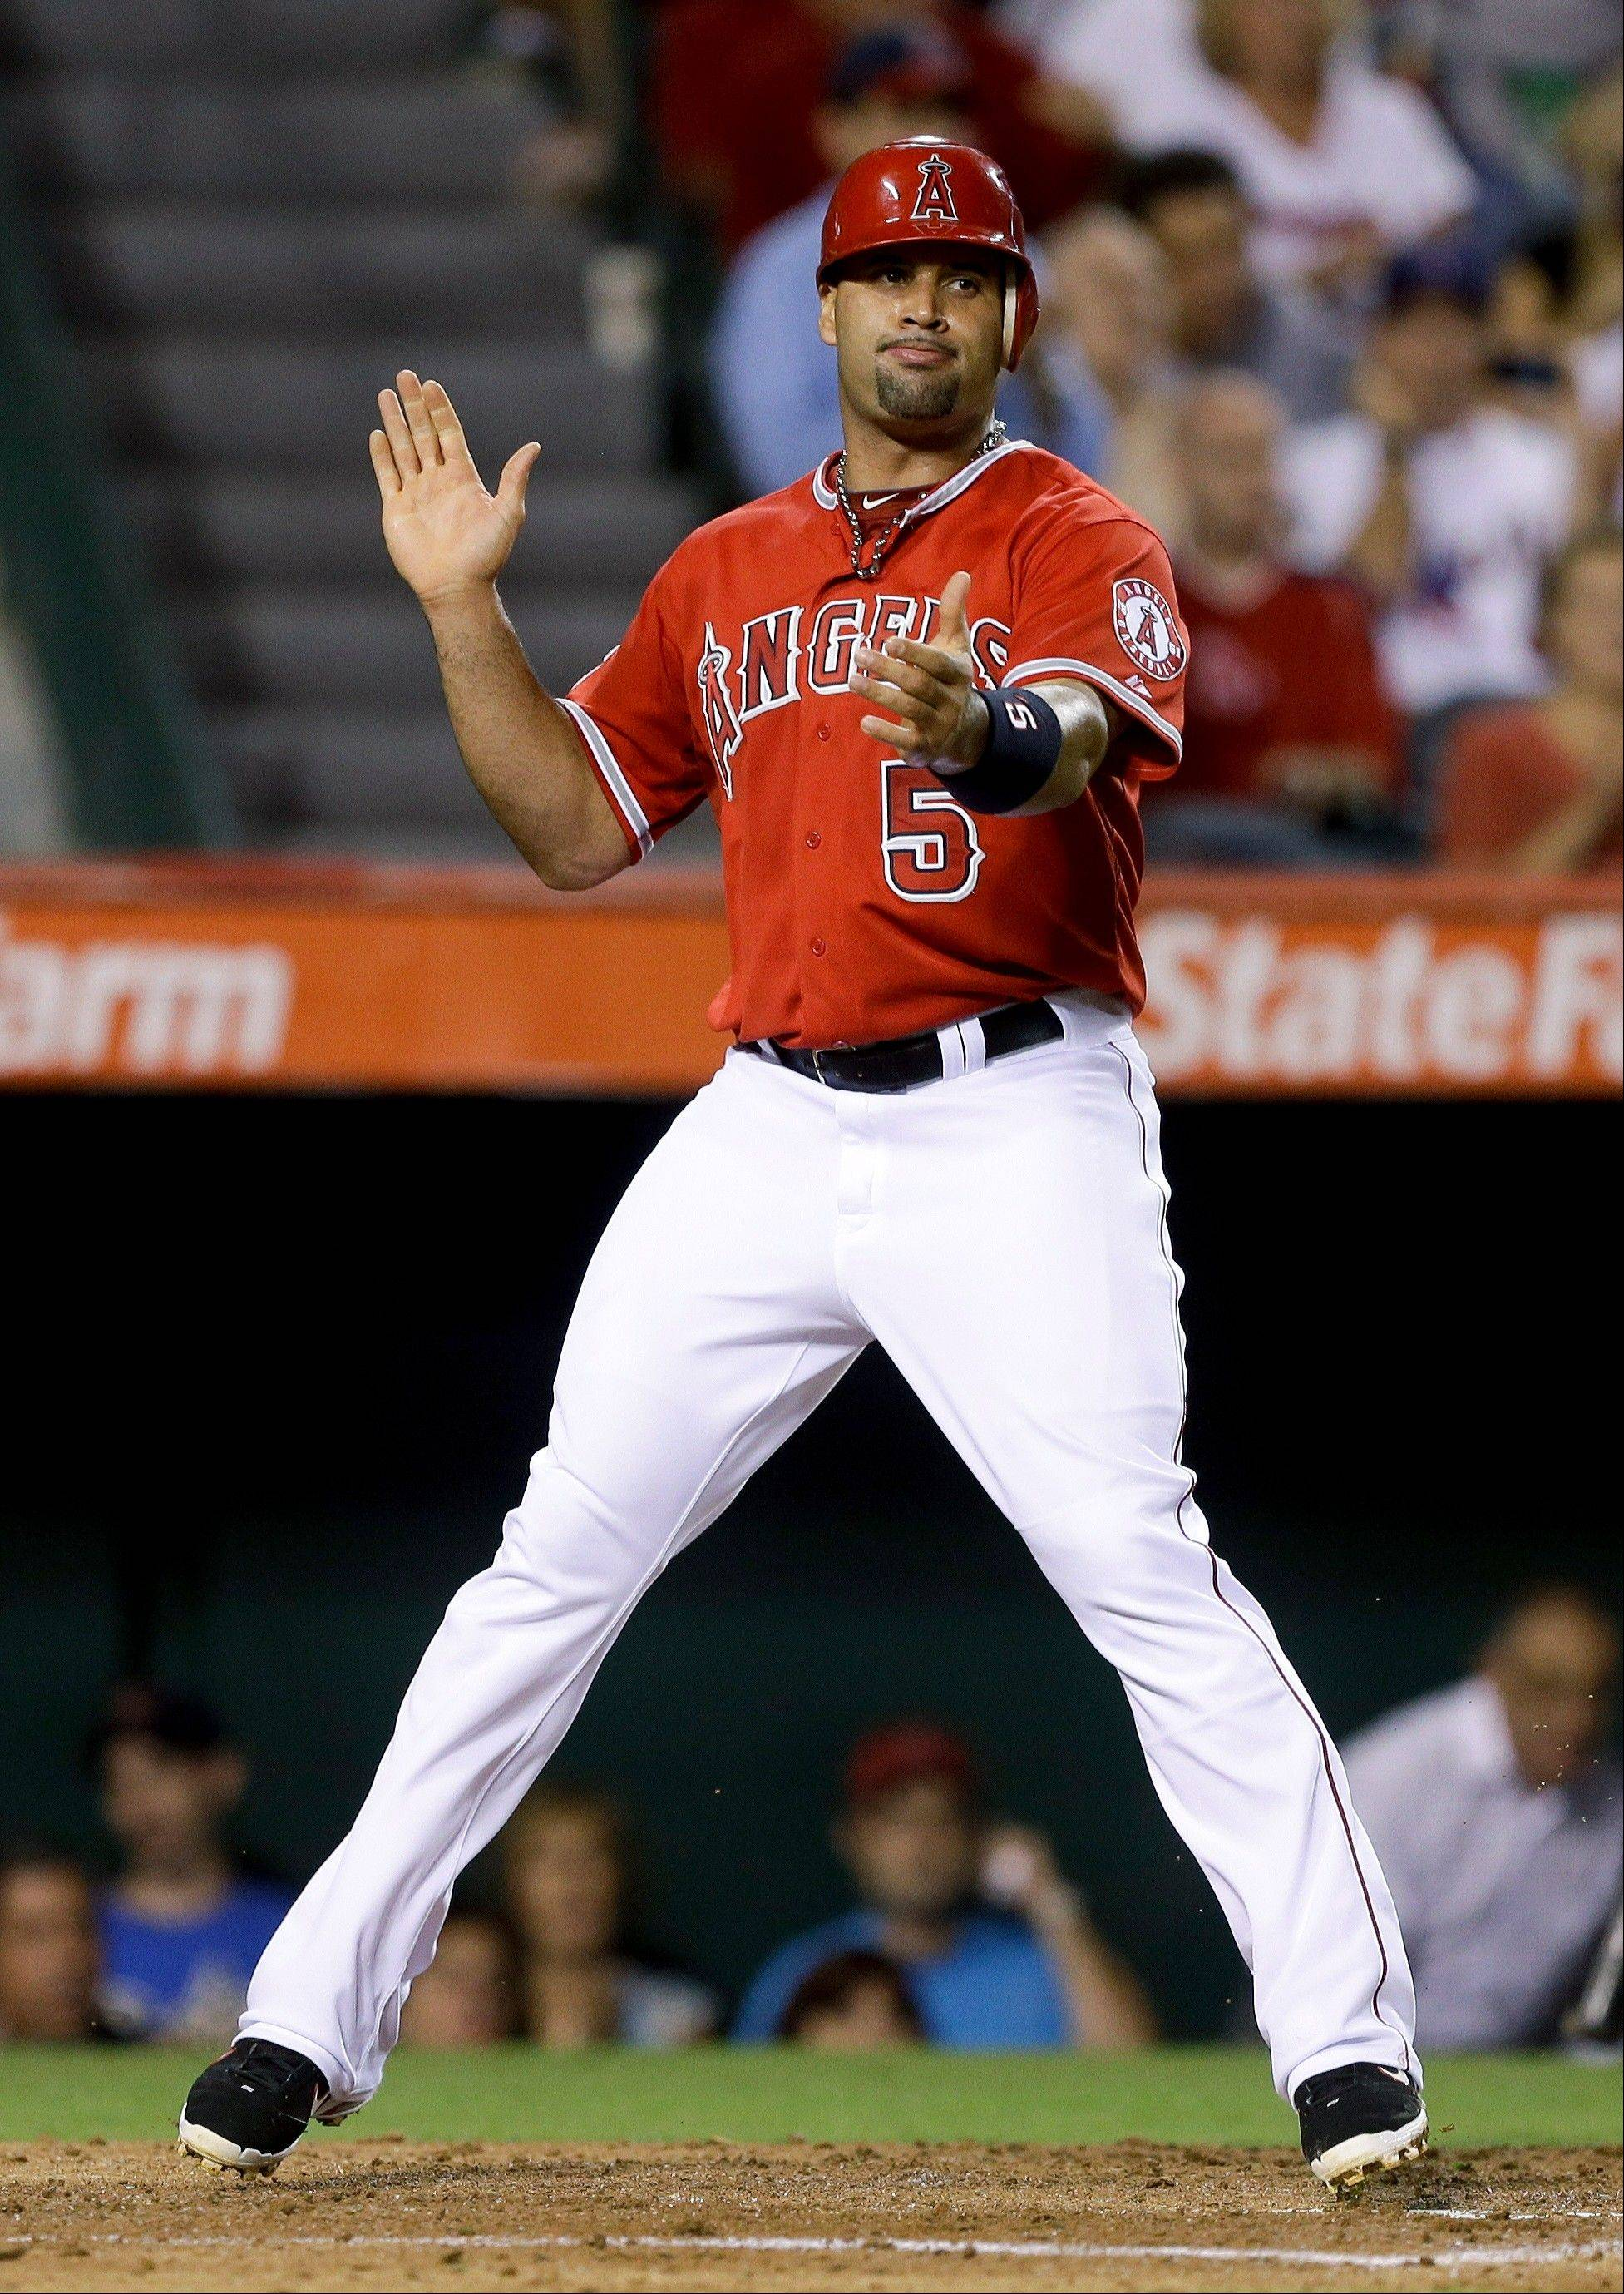 The Angels' Albert Pujols celebrates after scoring on a hit by Alberto Callaspo during the third inning against Boston on Thursday in Anaheim, Calif.